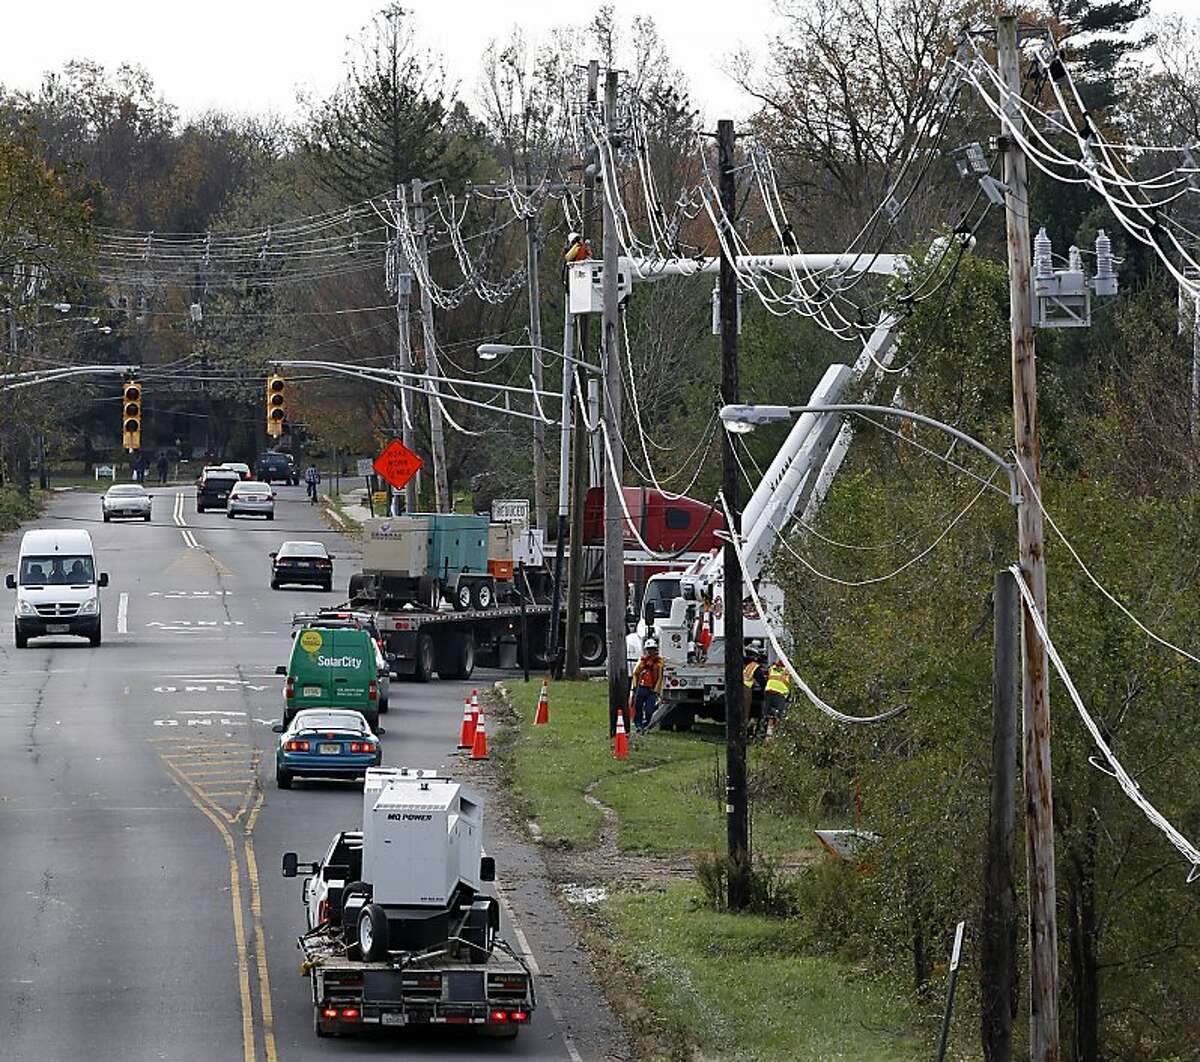 Trucks carry portable generators as crews work on power lines damaged by the superstorm in Hightstown, N.J.